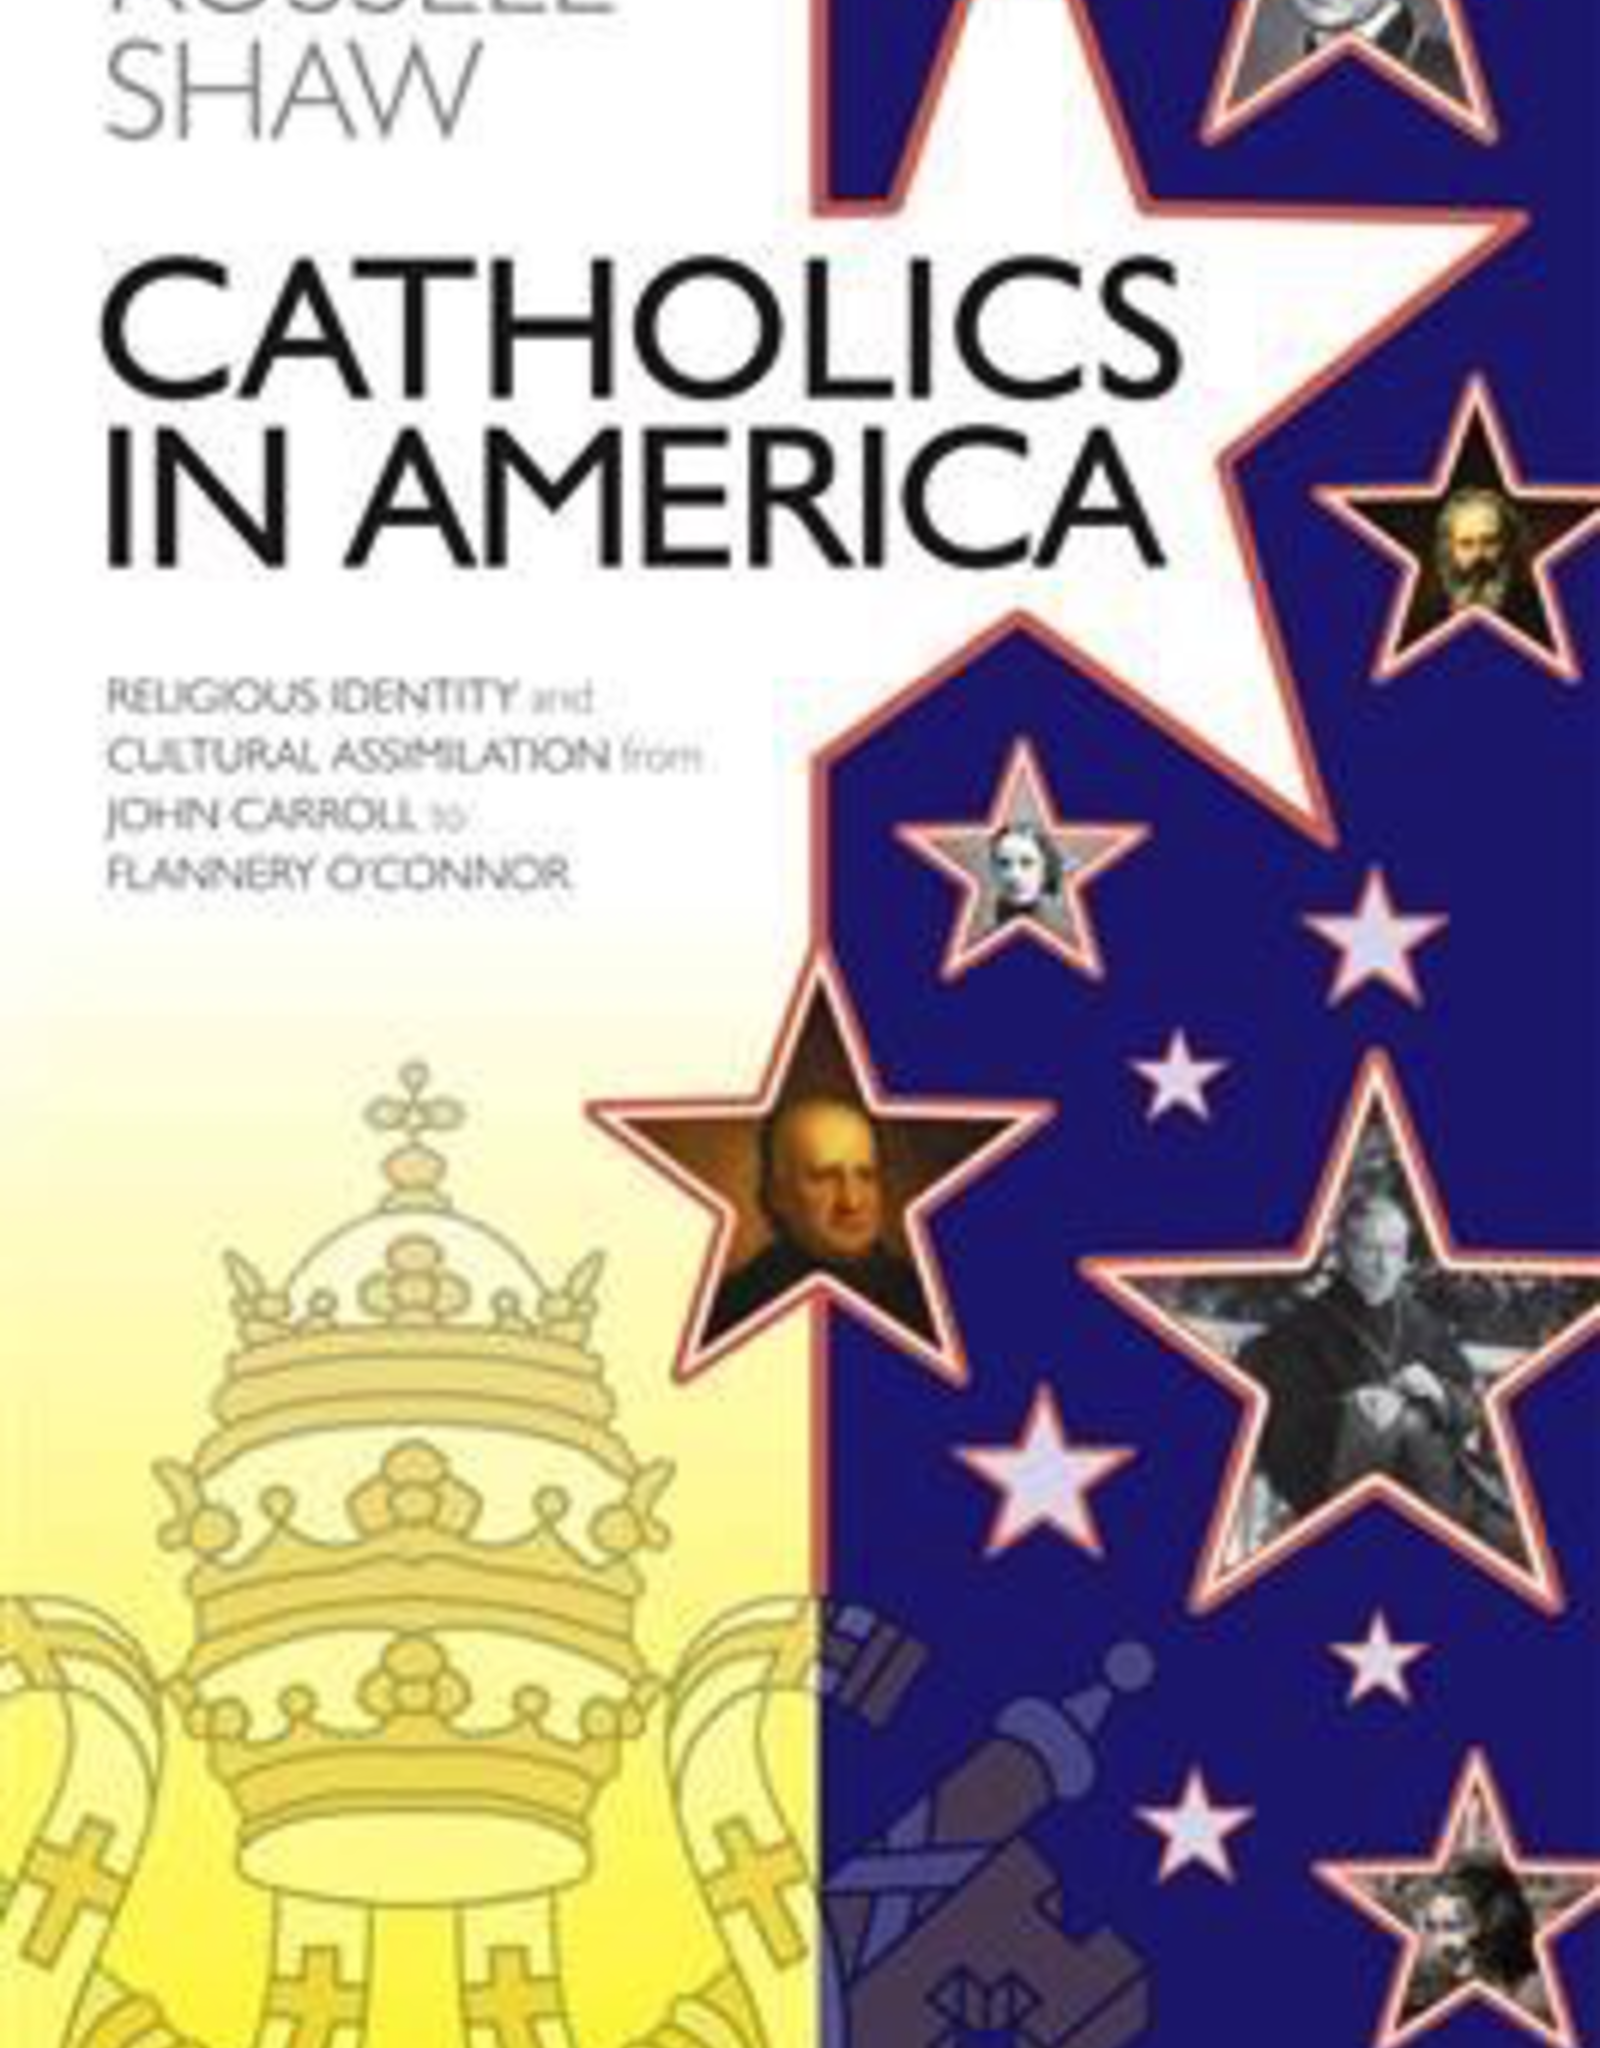 Ignatius Press Catholics in America:  Religious Identity and Cultural Assimilation from John Carroll to Flanerry O'Conner, by Russel Shaw (paperback)